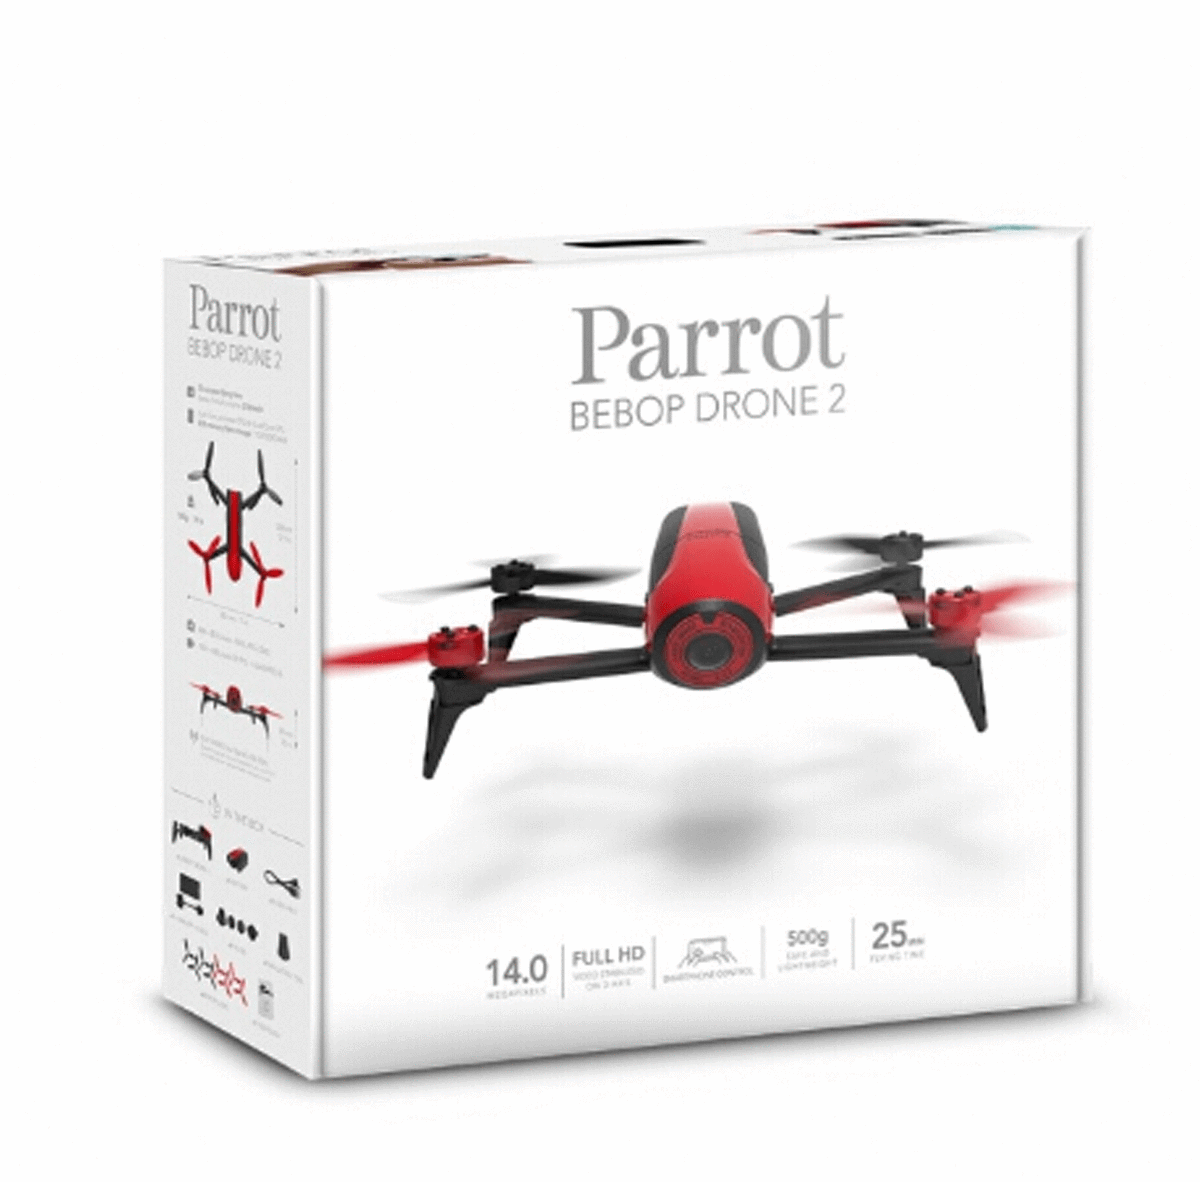 parrot bebop 2 drone In the box